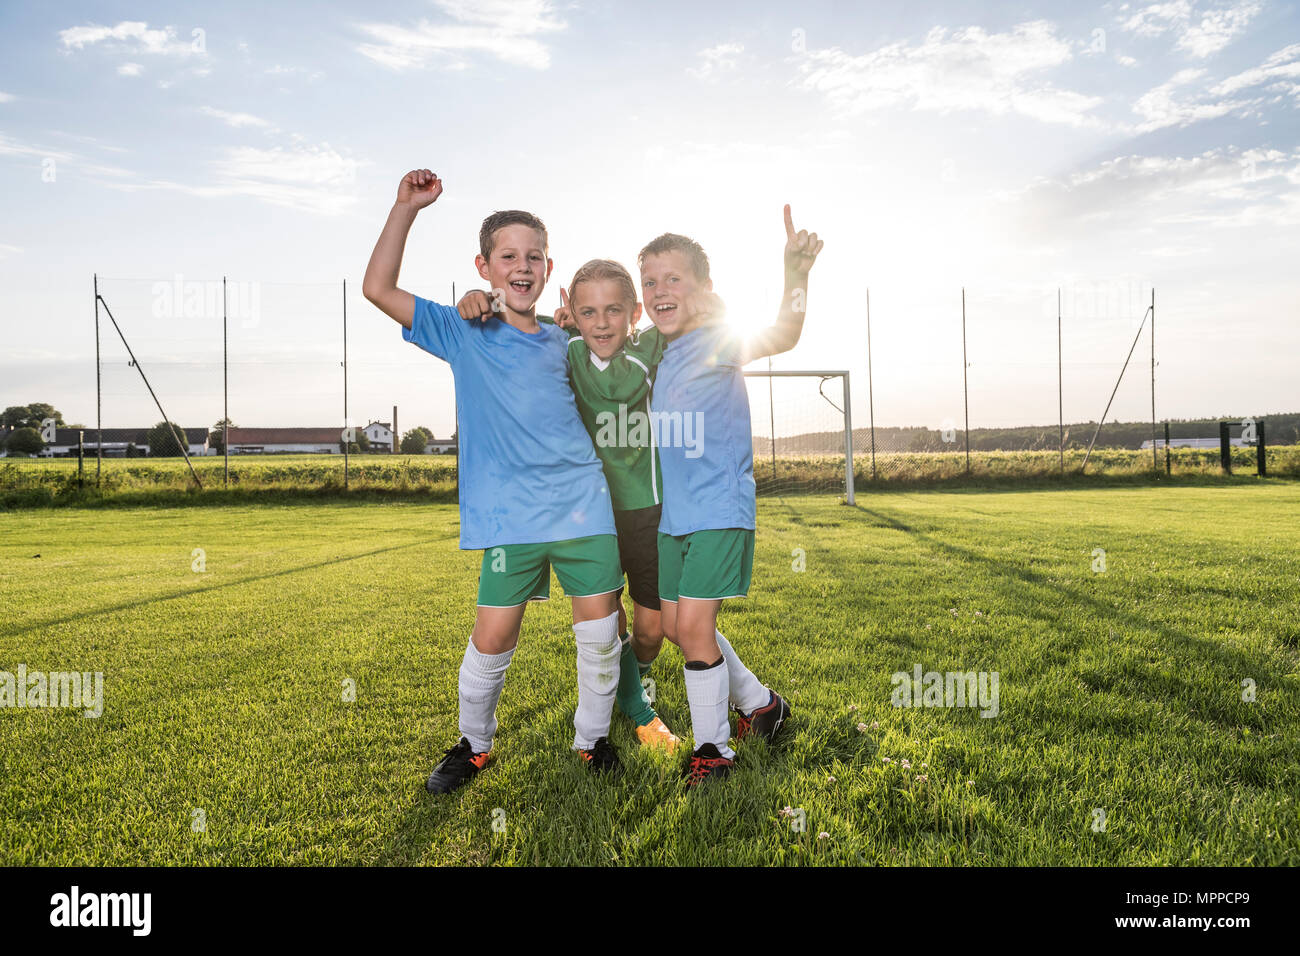 Young football players cheering on football ground - Stock Image